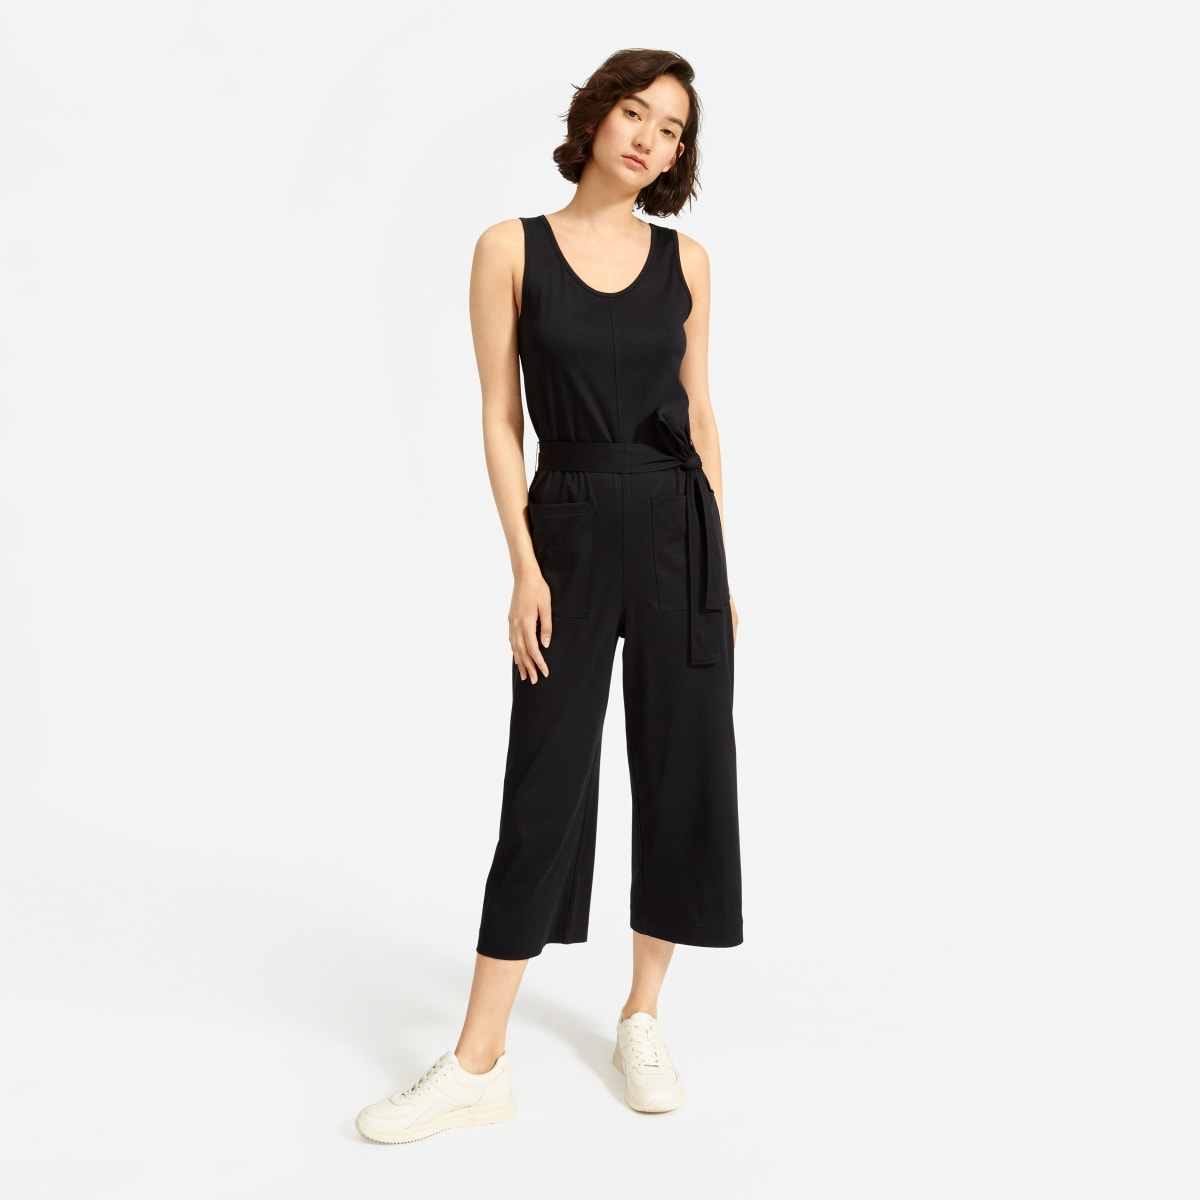 The Luxe Cotton Jumpsuit